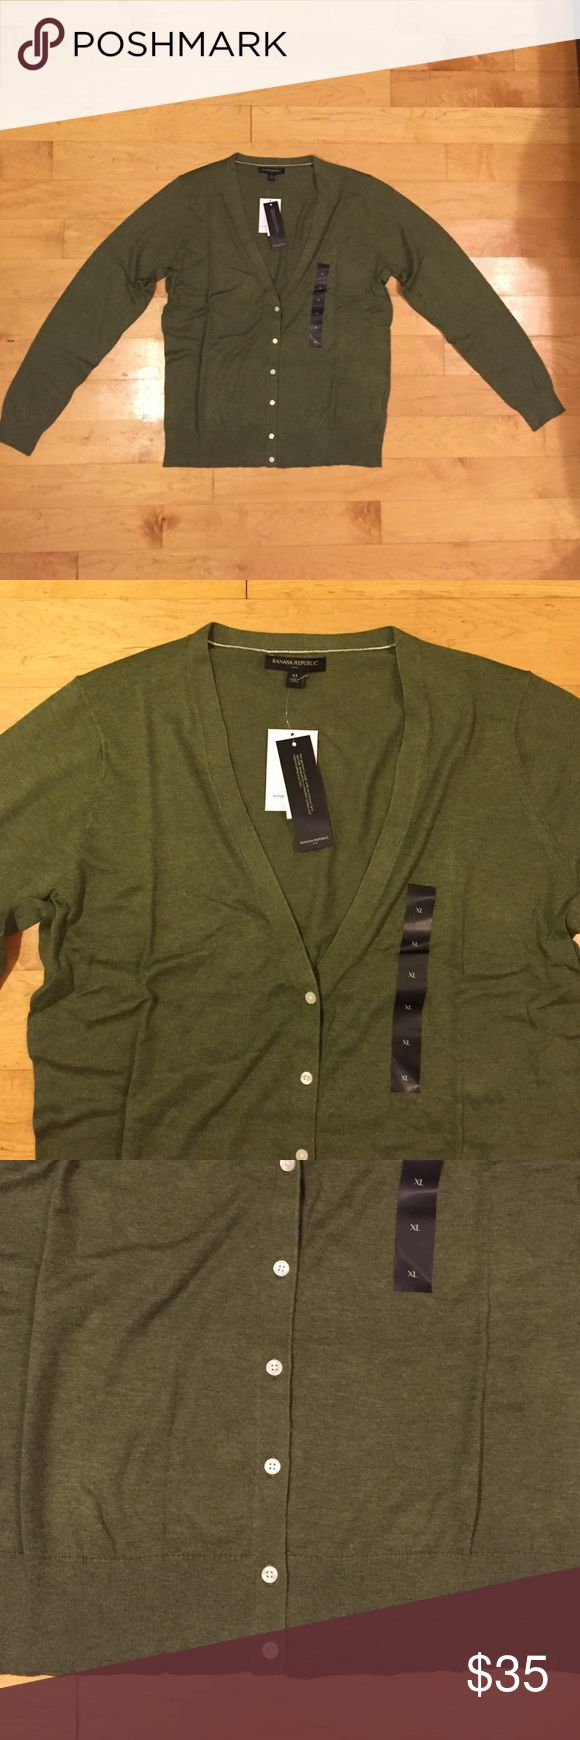 NWT Army Green V-Neck Cardigan NWT Army Green V-Neck Cardigan from Banana Republic. Very simple and would pair with any top in my closet! Fabric is 60% cotton and 40% rayon. Banana Republic Sweaters Cardigans